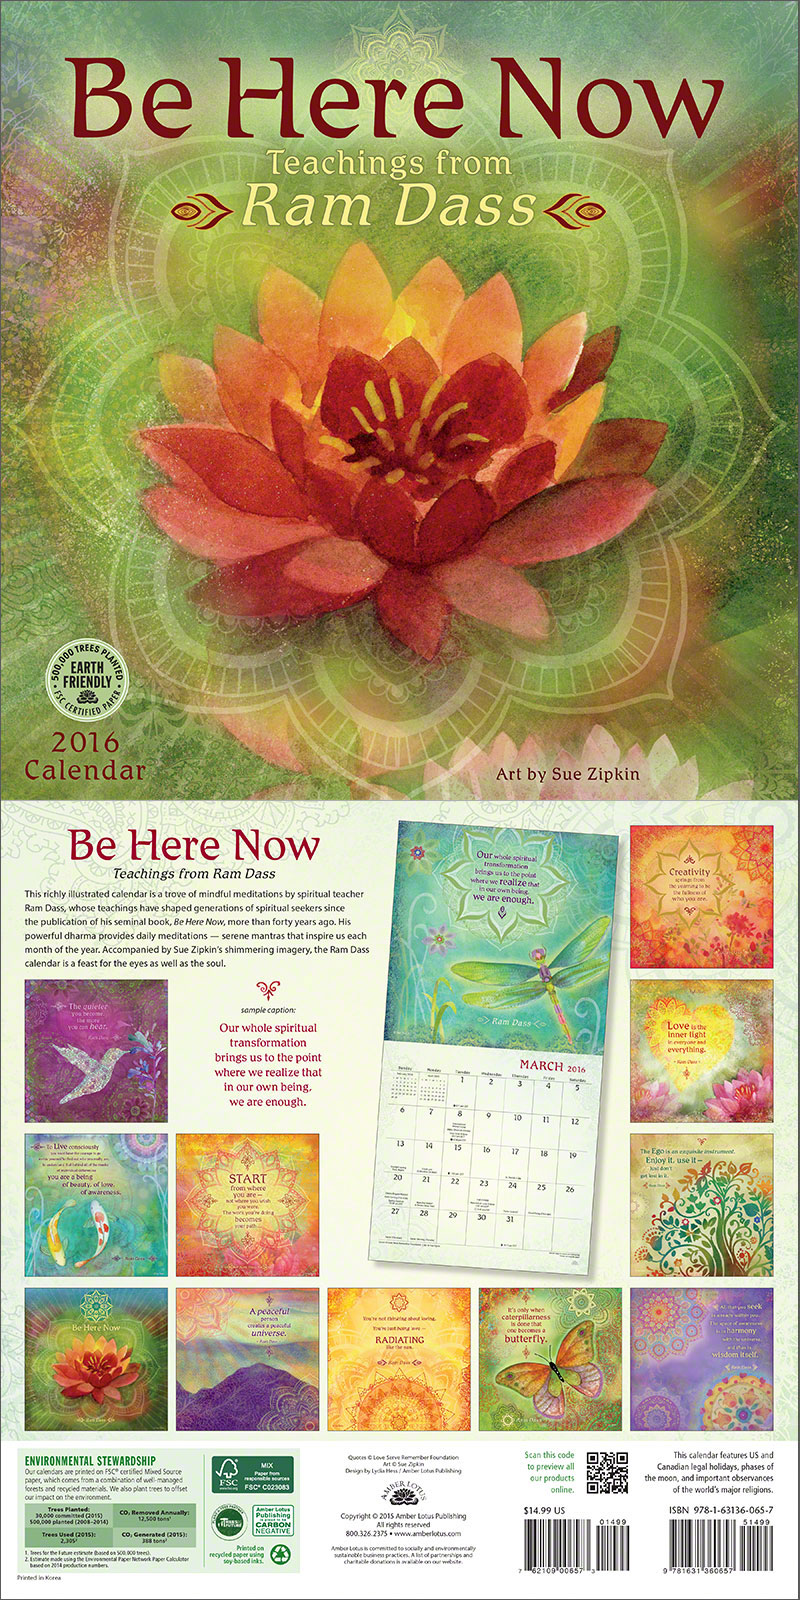 Be Here Now 2016 wall calendar with text by Ram Dass